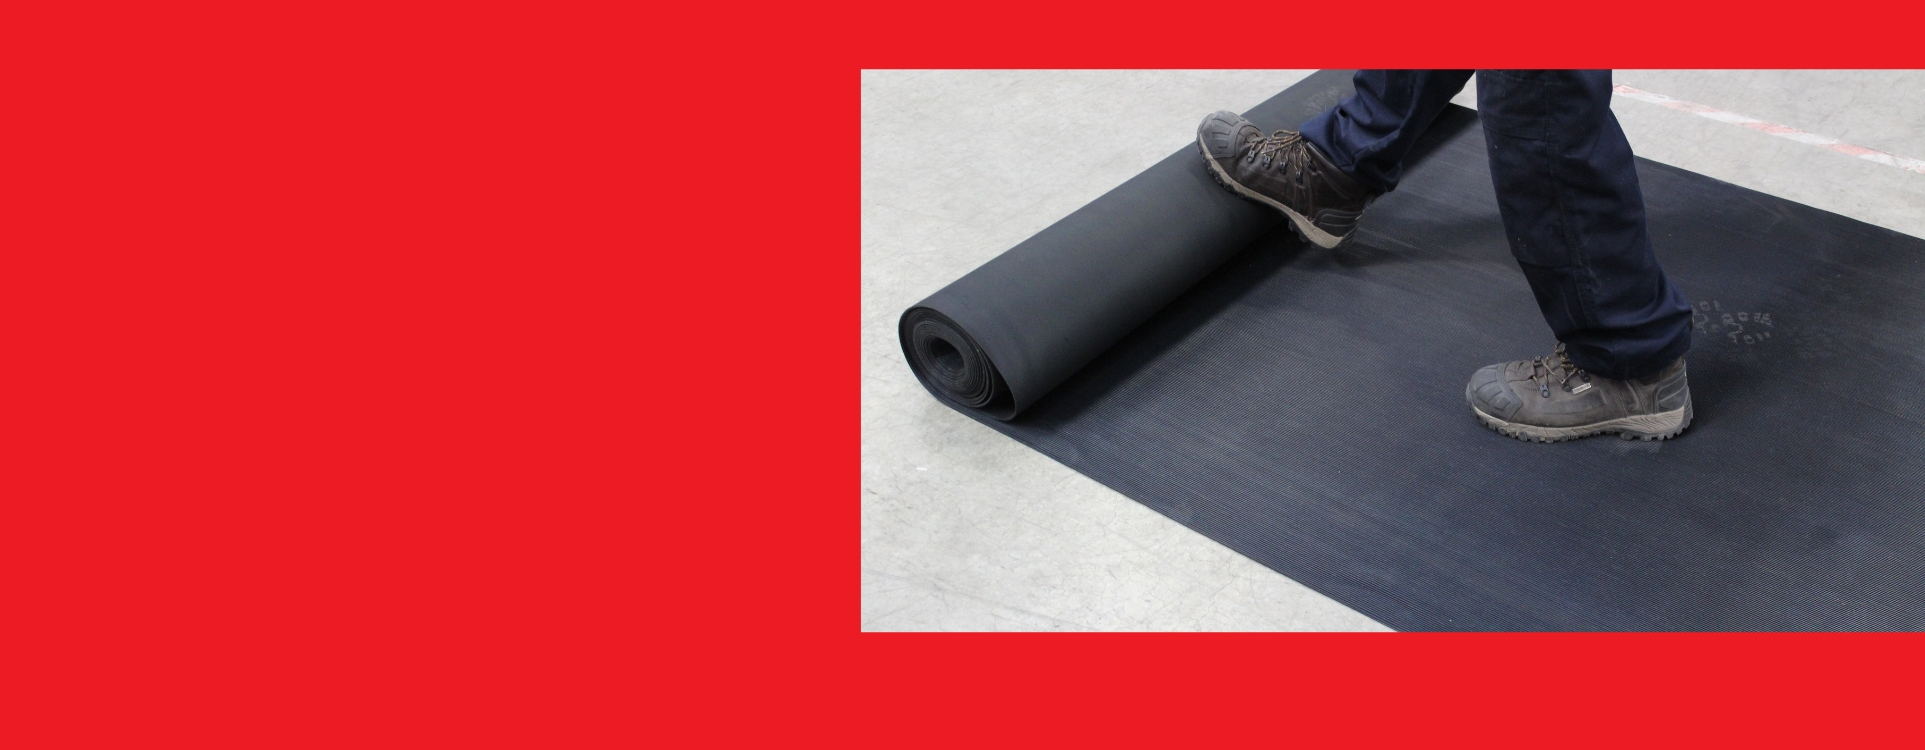 NEW PRODUCT -       ANTI-SLIP WALKWAY MATTING